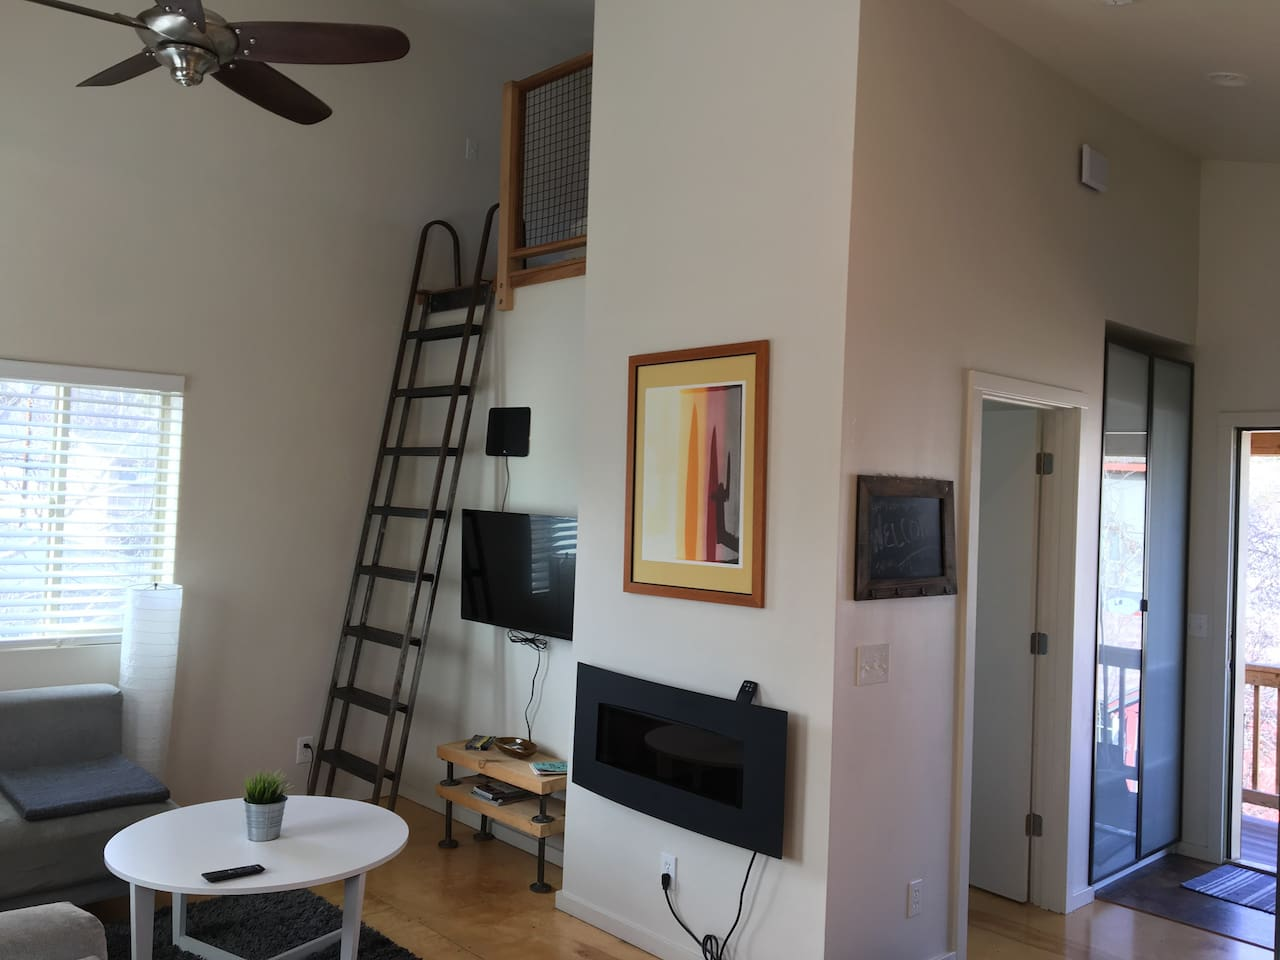 Bright, open airy loft, with tall ceilings all the amenities for a comfortable stay in our home.